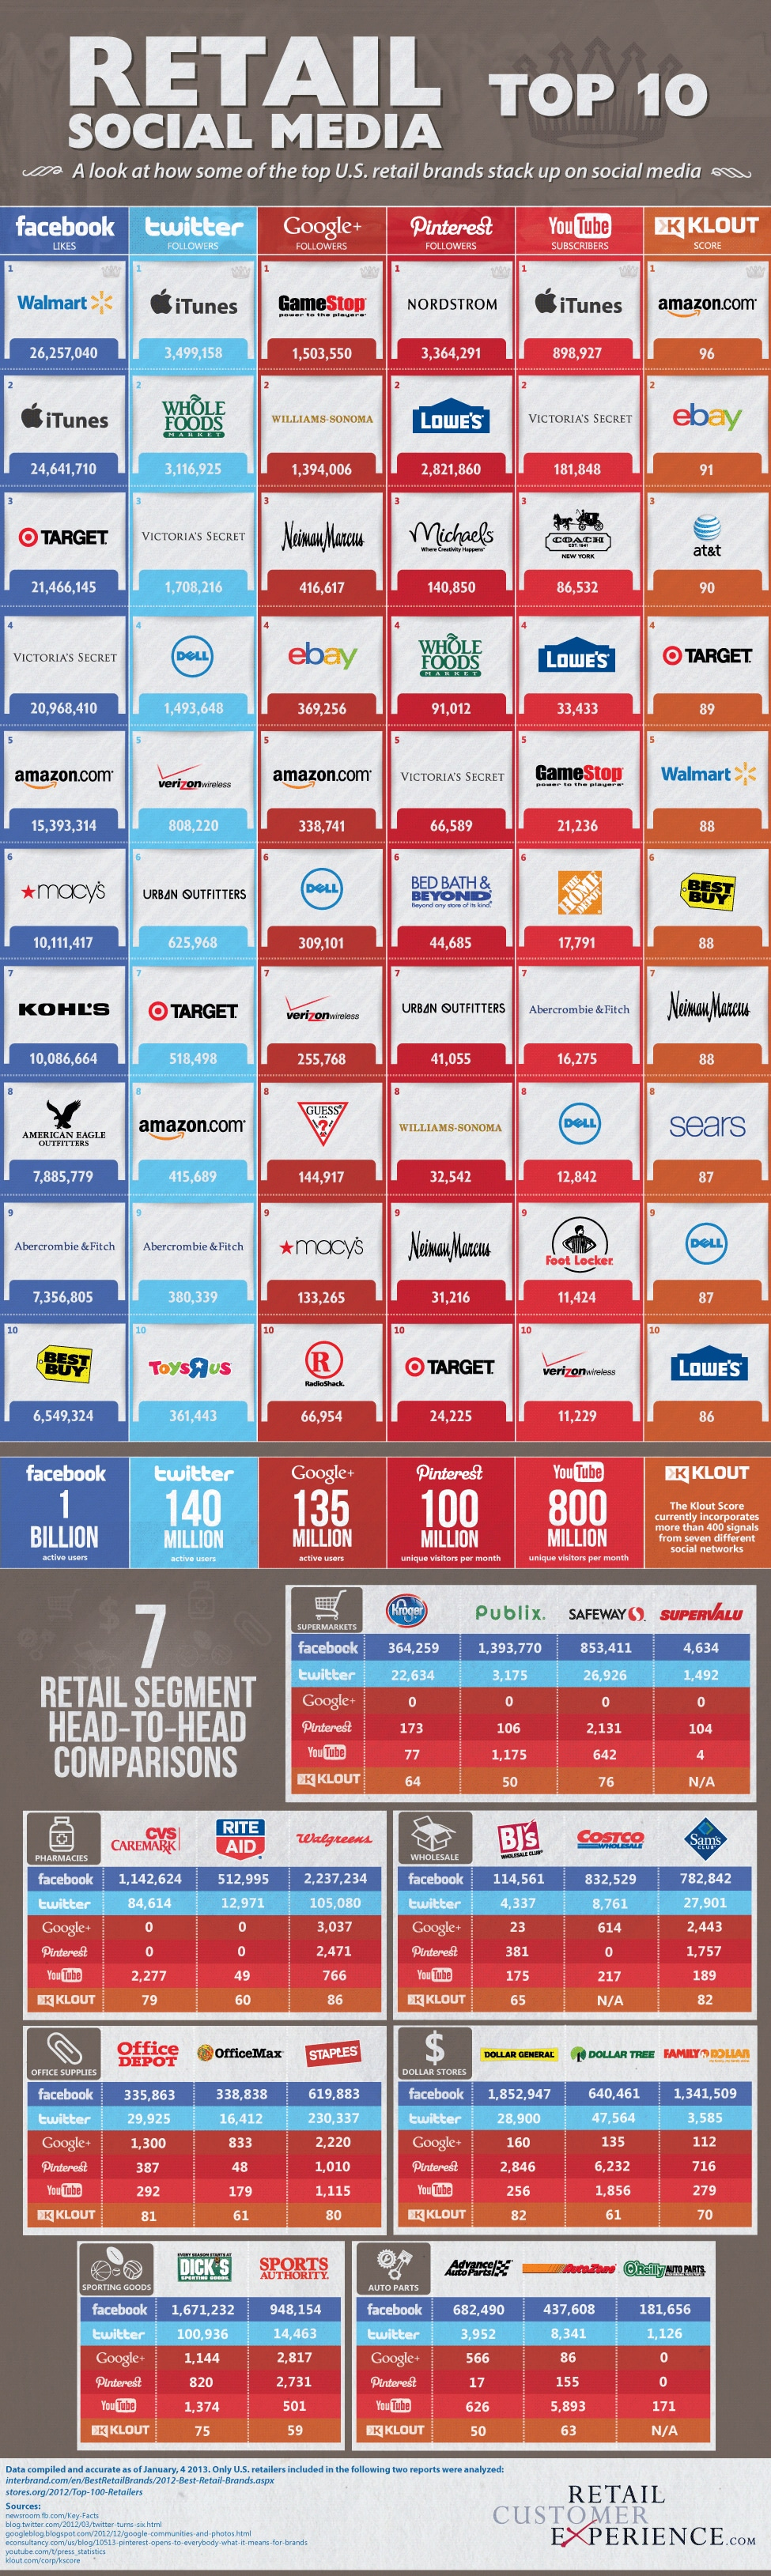 Top 10 Retailers In Social Media: U.S. Brand Comparison [Infographic]